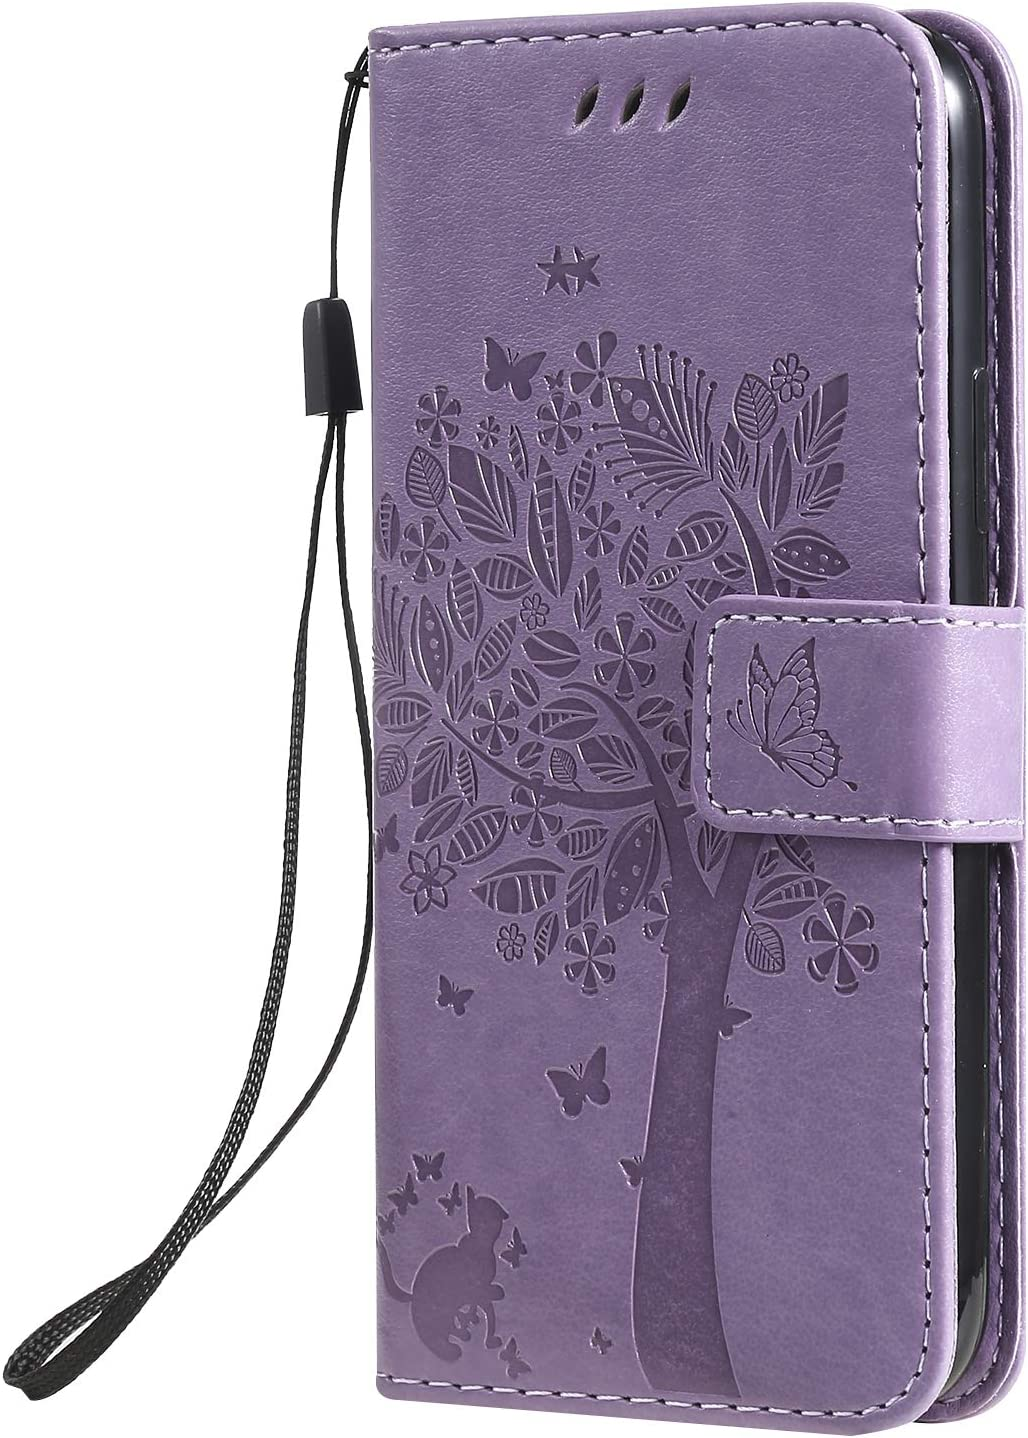 2019 Case,SKYMARS Cat Tree Embossed PU Leather Flip Kickstand Cards Slot Cash Pockets Wallet Magnetic Closure Book Style Case for iPhone 11 Pro 5.8 inch iPhone 11 Pro 5.8 inch 2019 Cat Tree Grey